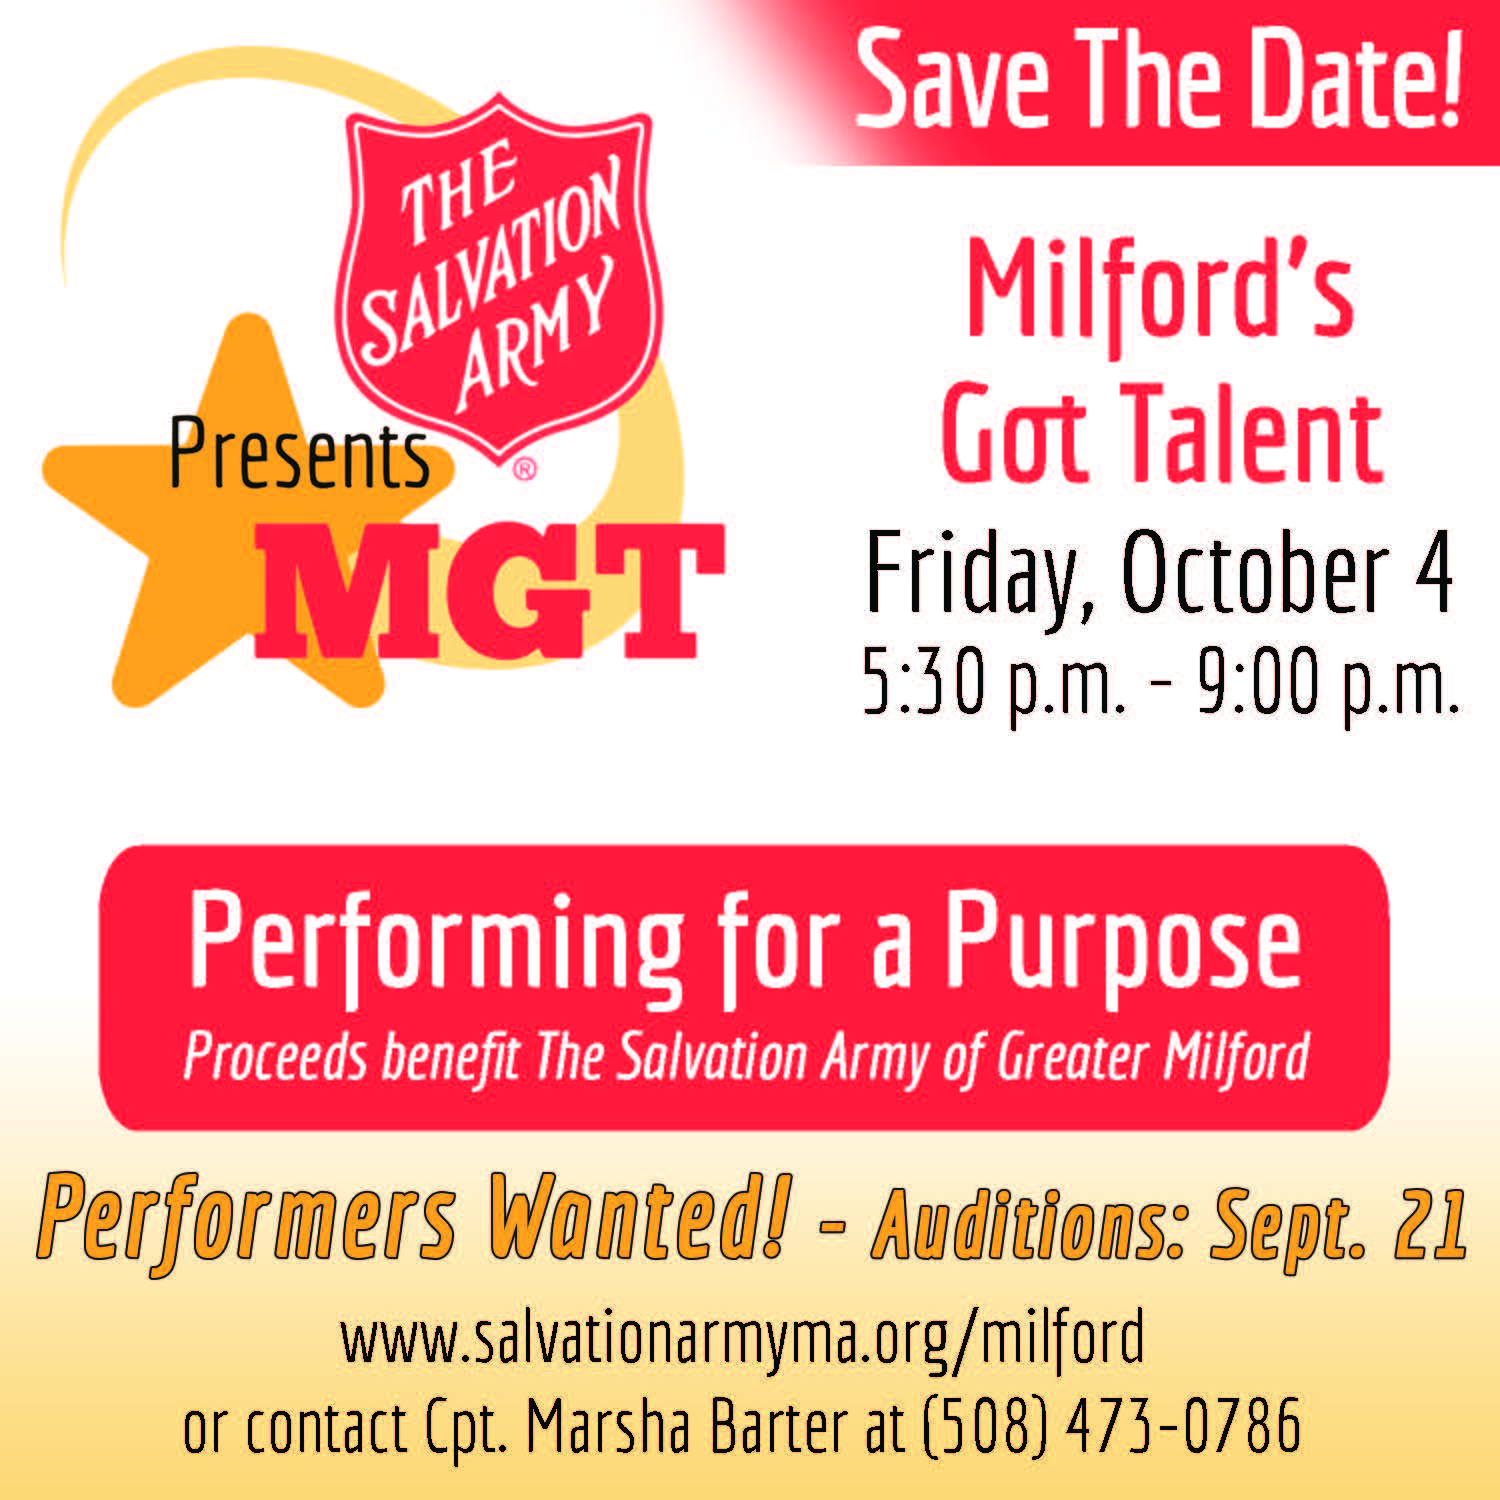 Join us for Milford's Got Talent